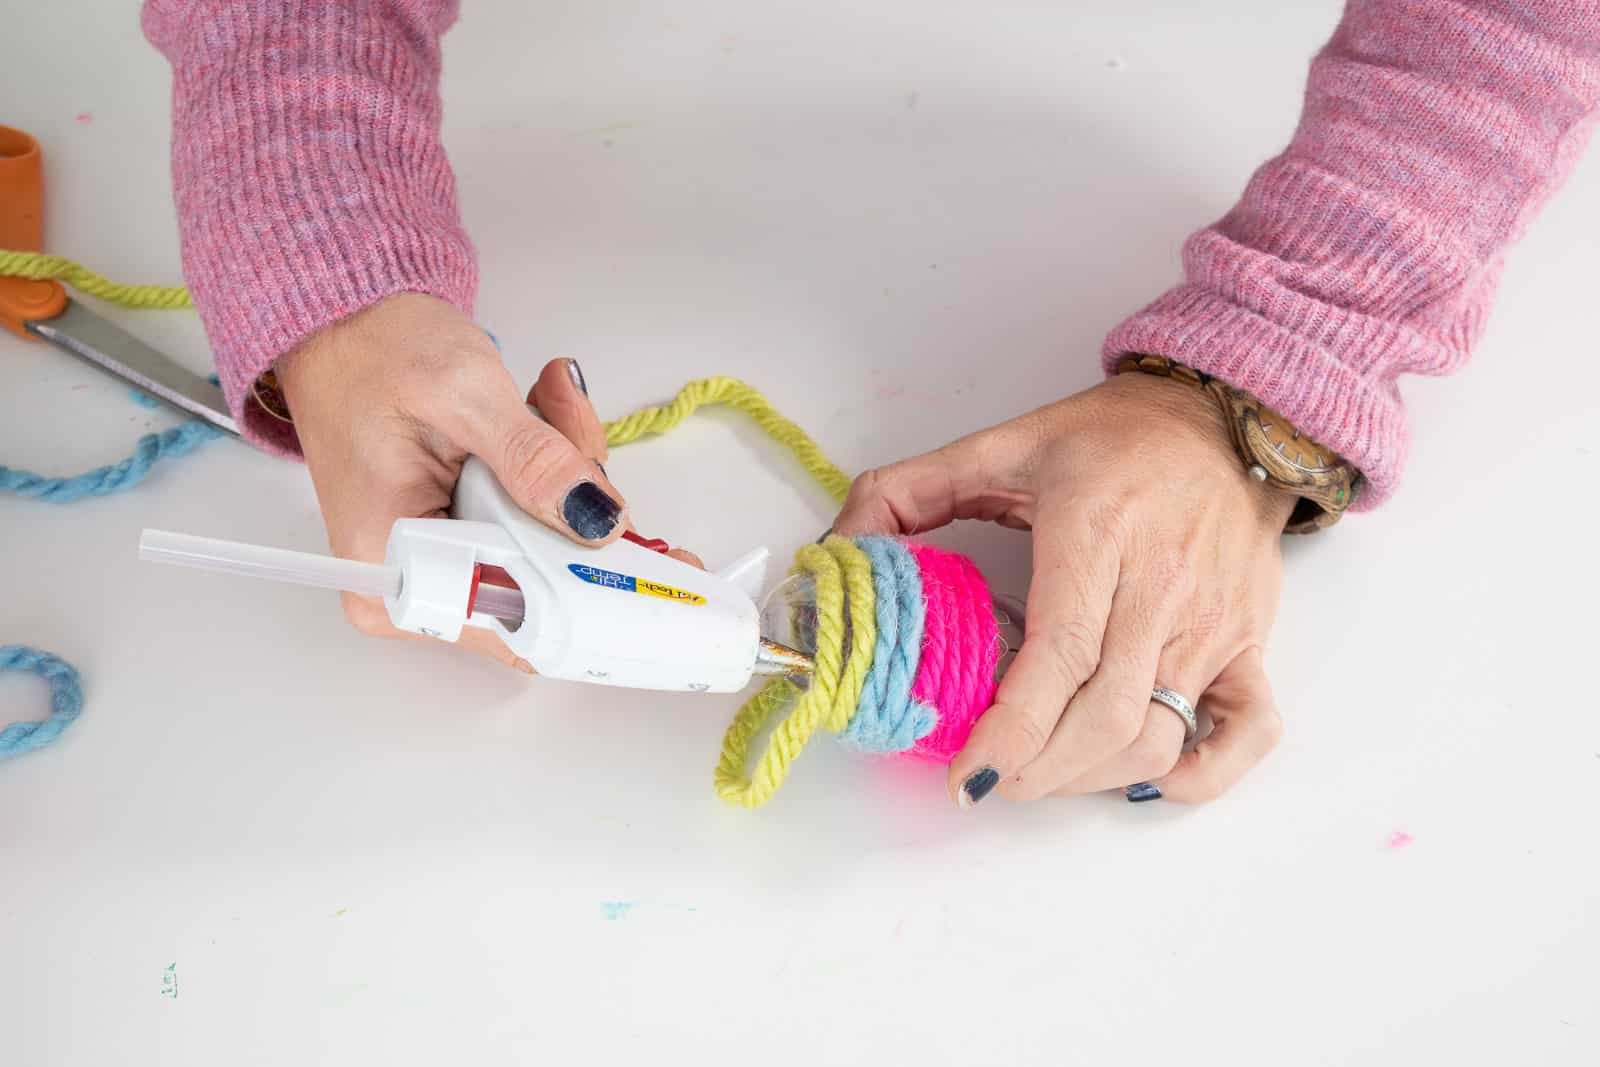 use the tip of the hot glue gun to help